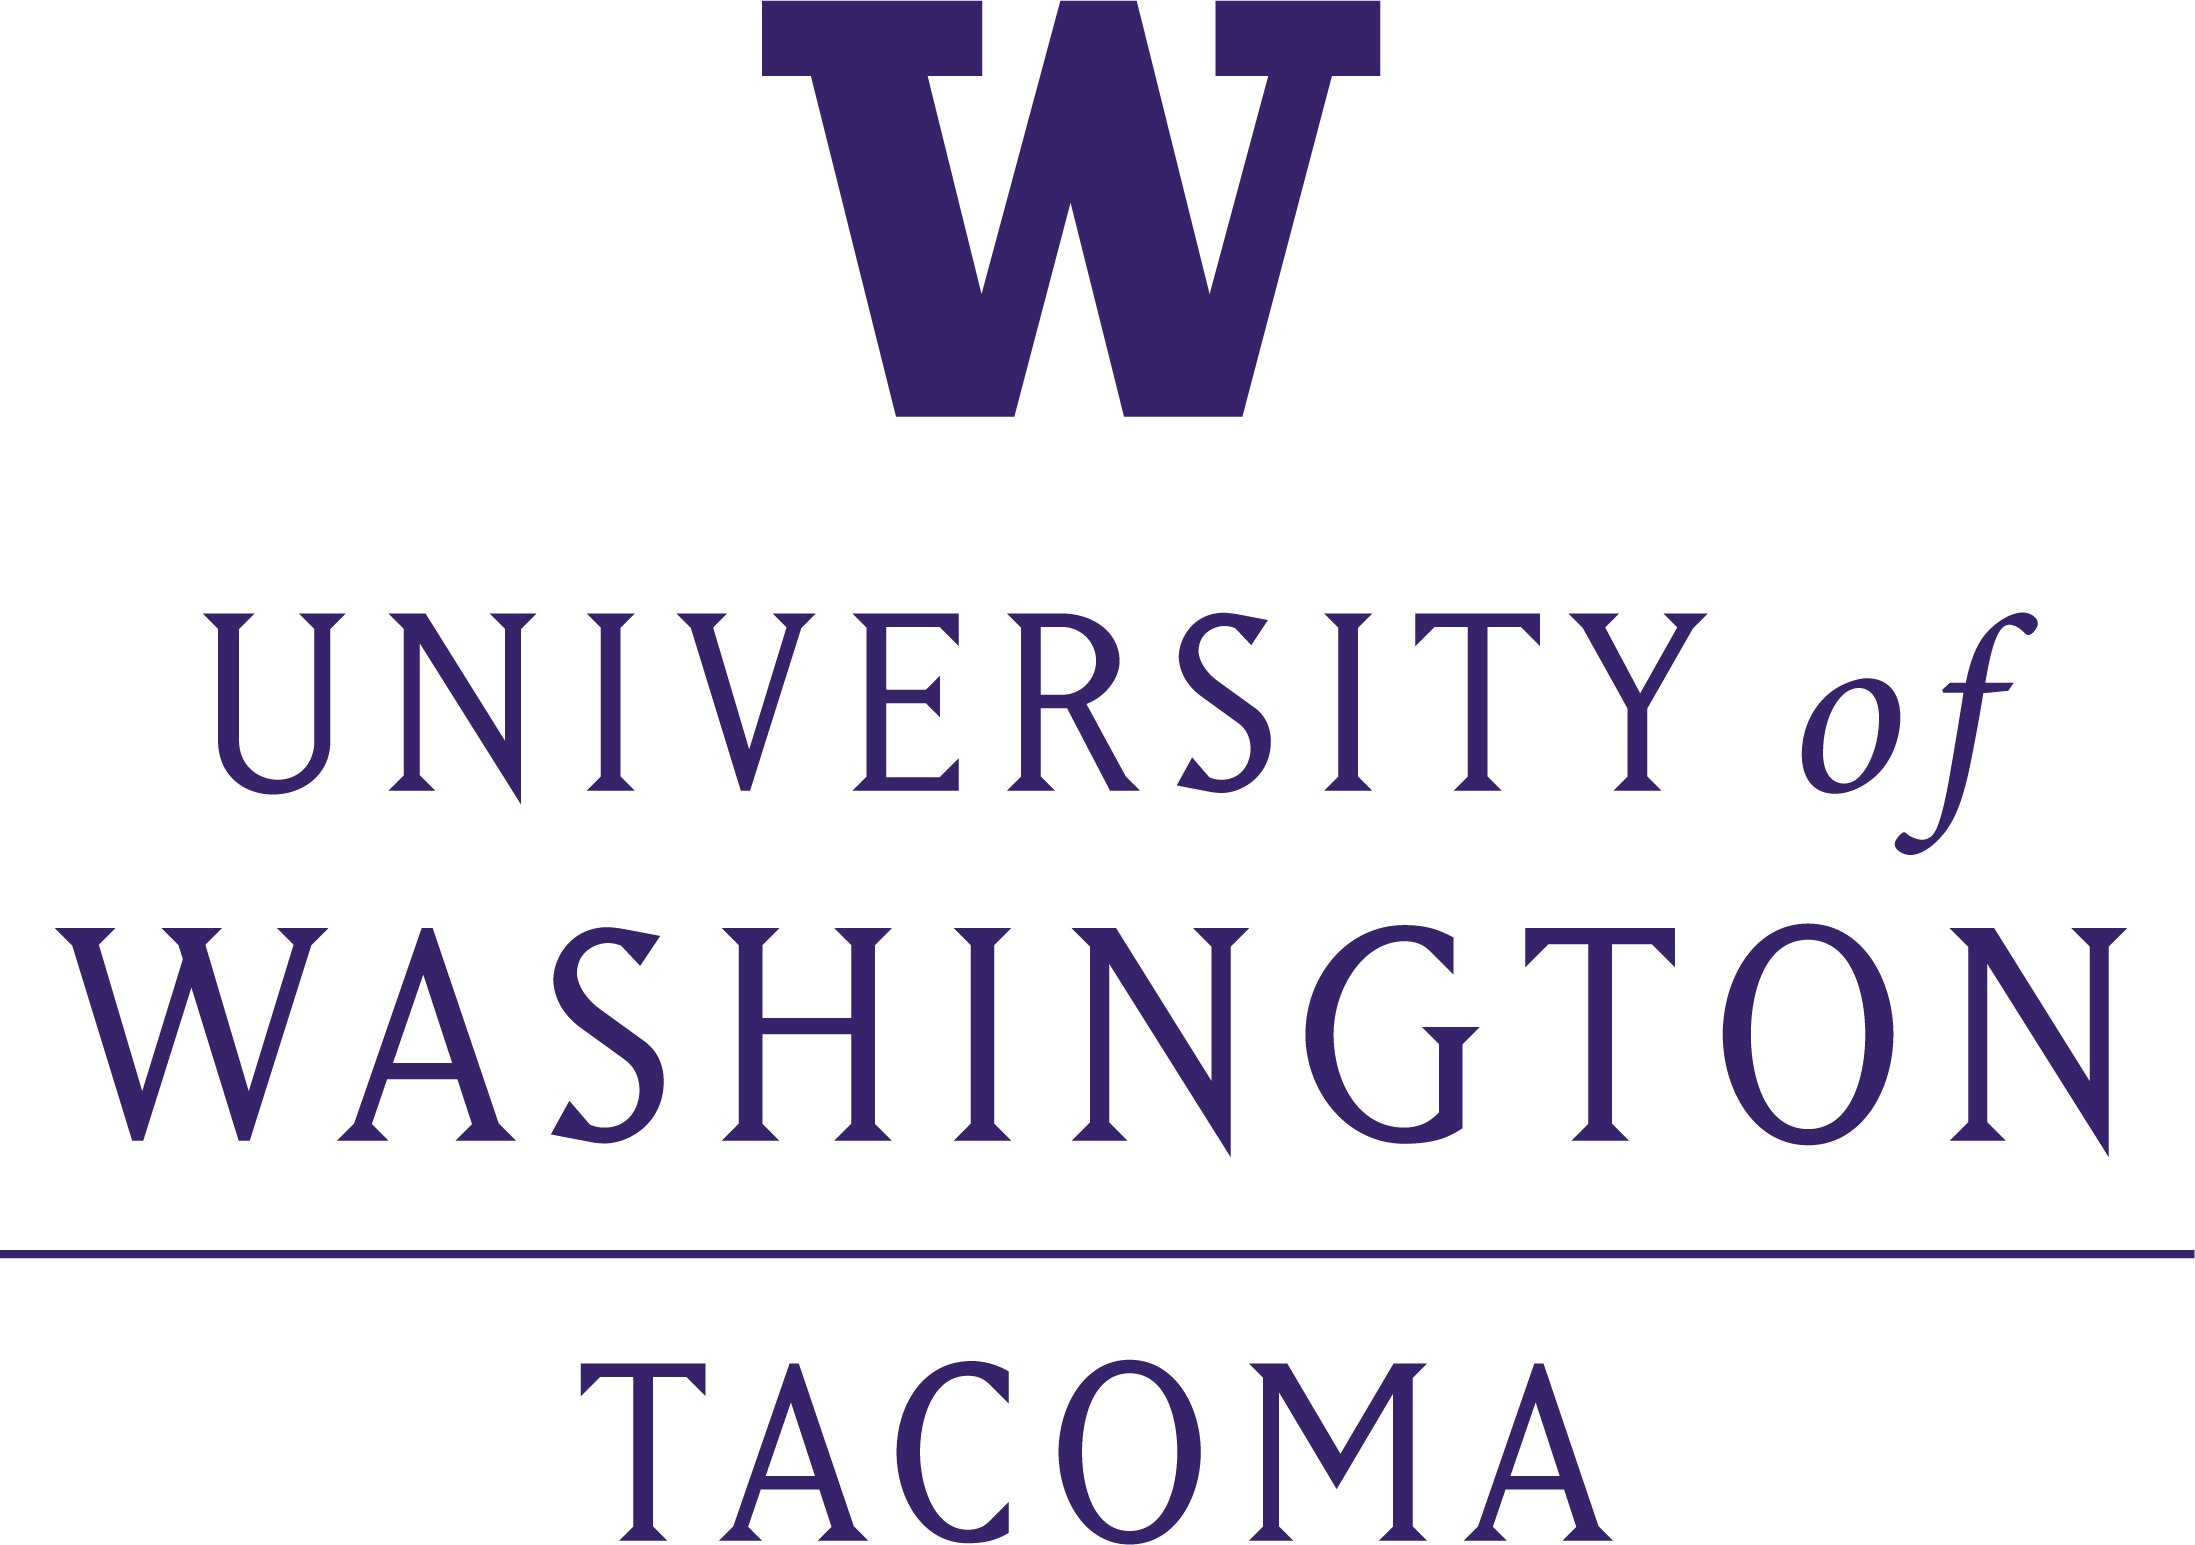 Tacoma_logo_08_paths_color (1).png